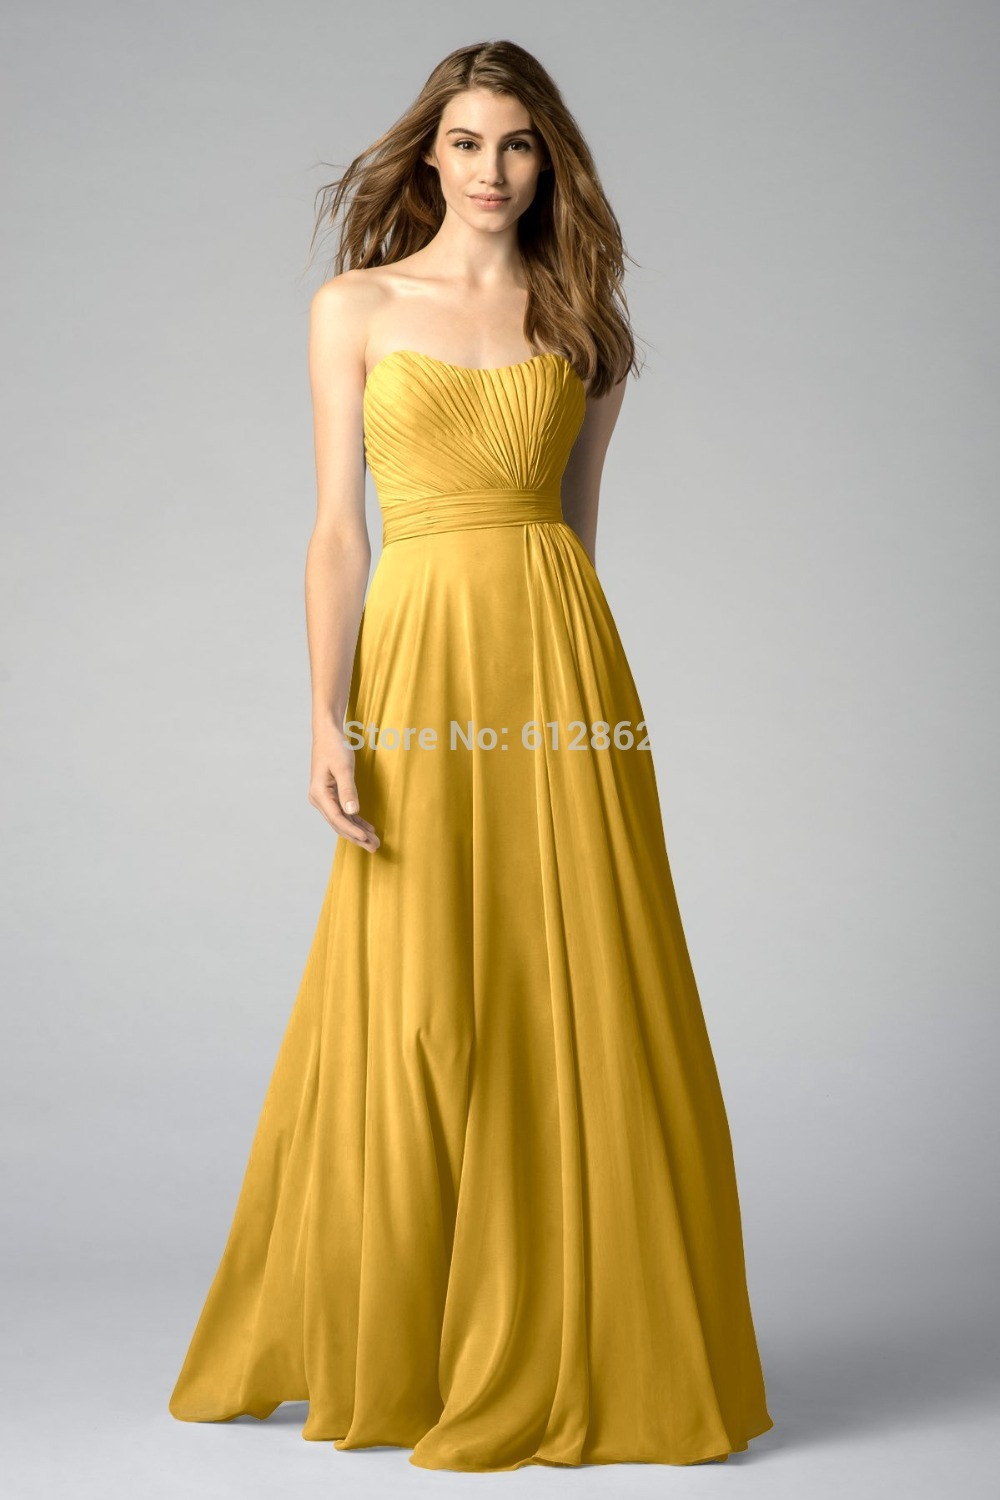 Yellow gold bridesmaid dresses gallery braidsmaid dress cocktail strapless chiffon bridesmaid dresses yellow gold dress images strapless chiffon bridesmaid dresses yellow gold ombrellifo gallery ombrellifo Image collections